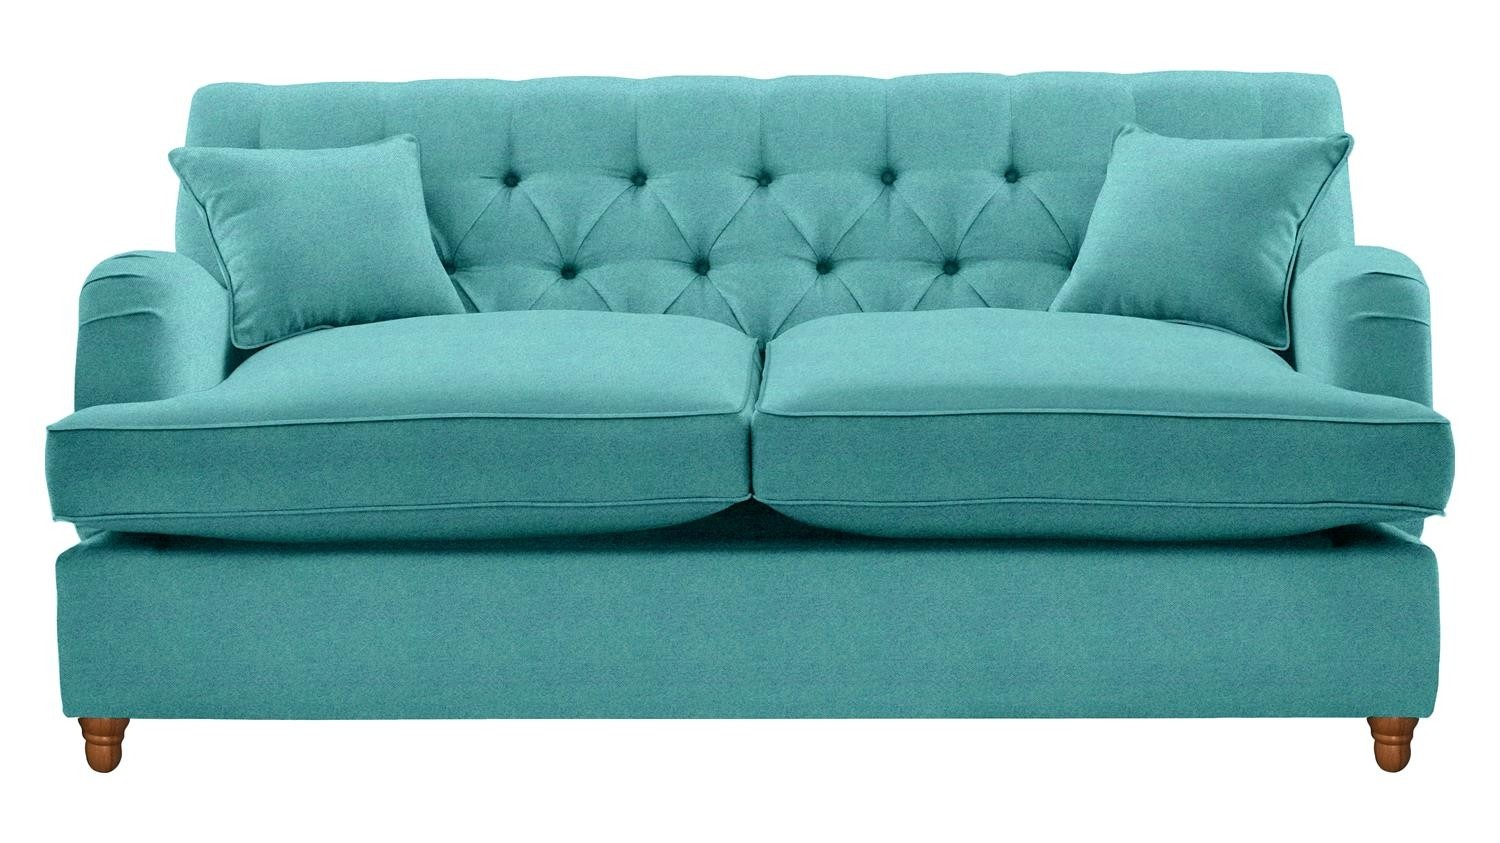 The Foxcote 3 Seater Sofa Bed